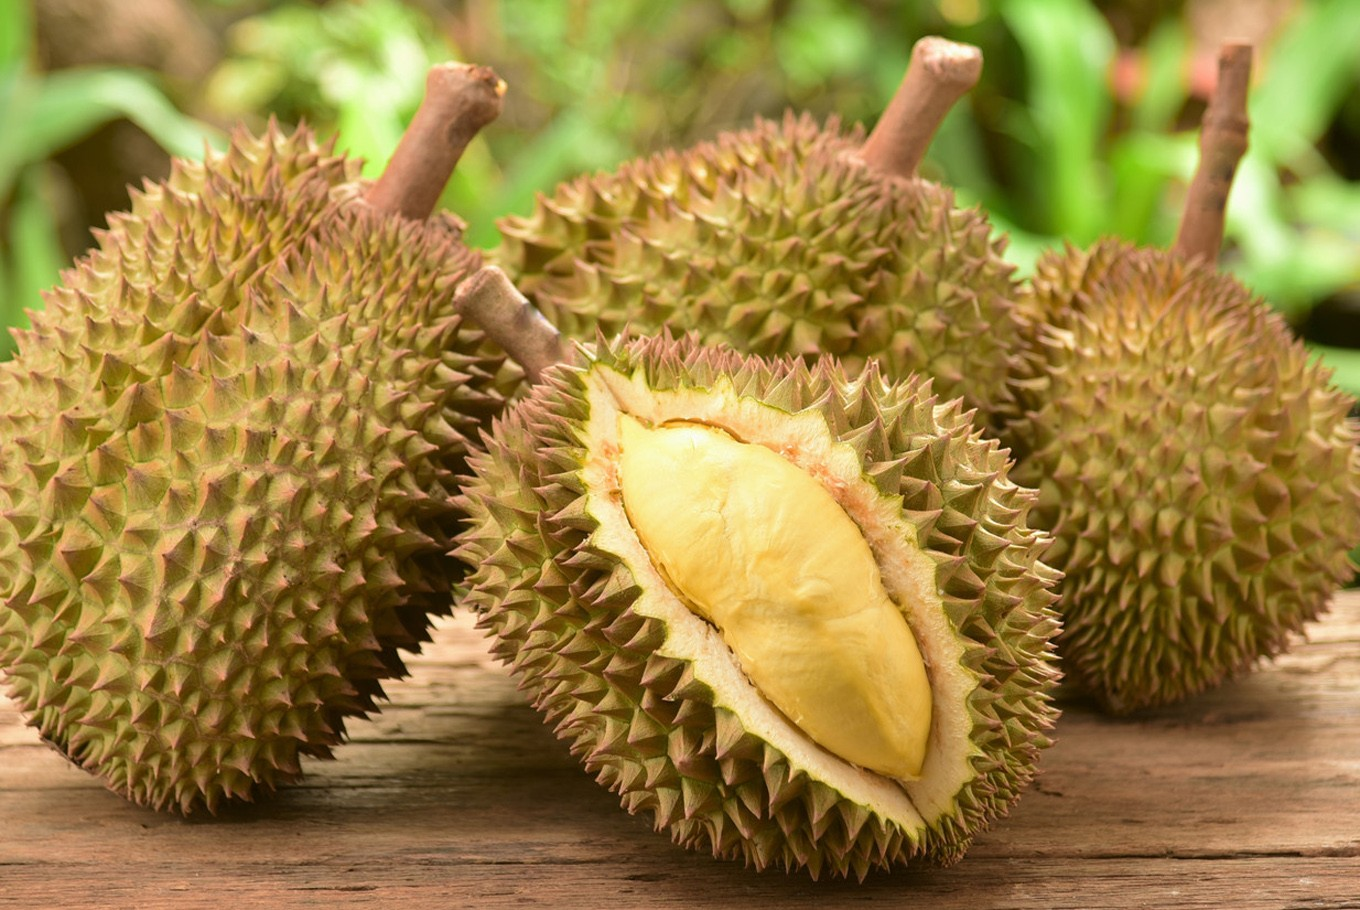 Smell of durian delays flight after passengers protest